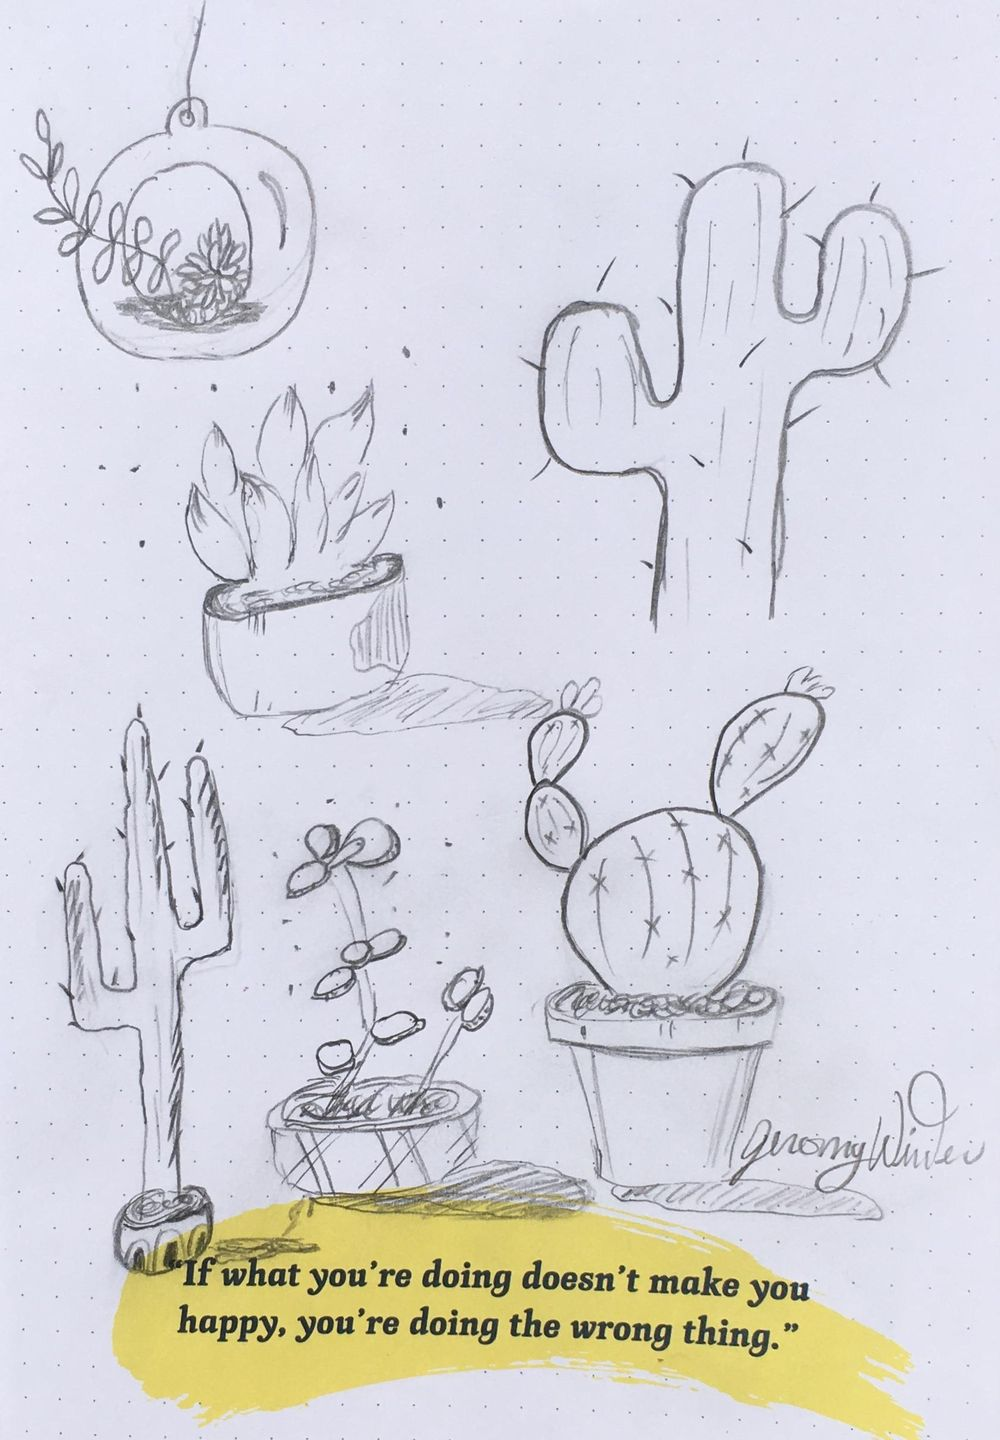 Prickly Cactus - image 1 - student project